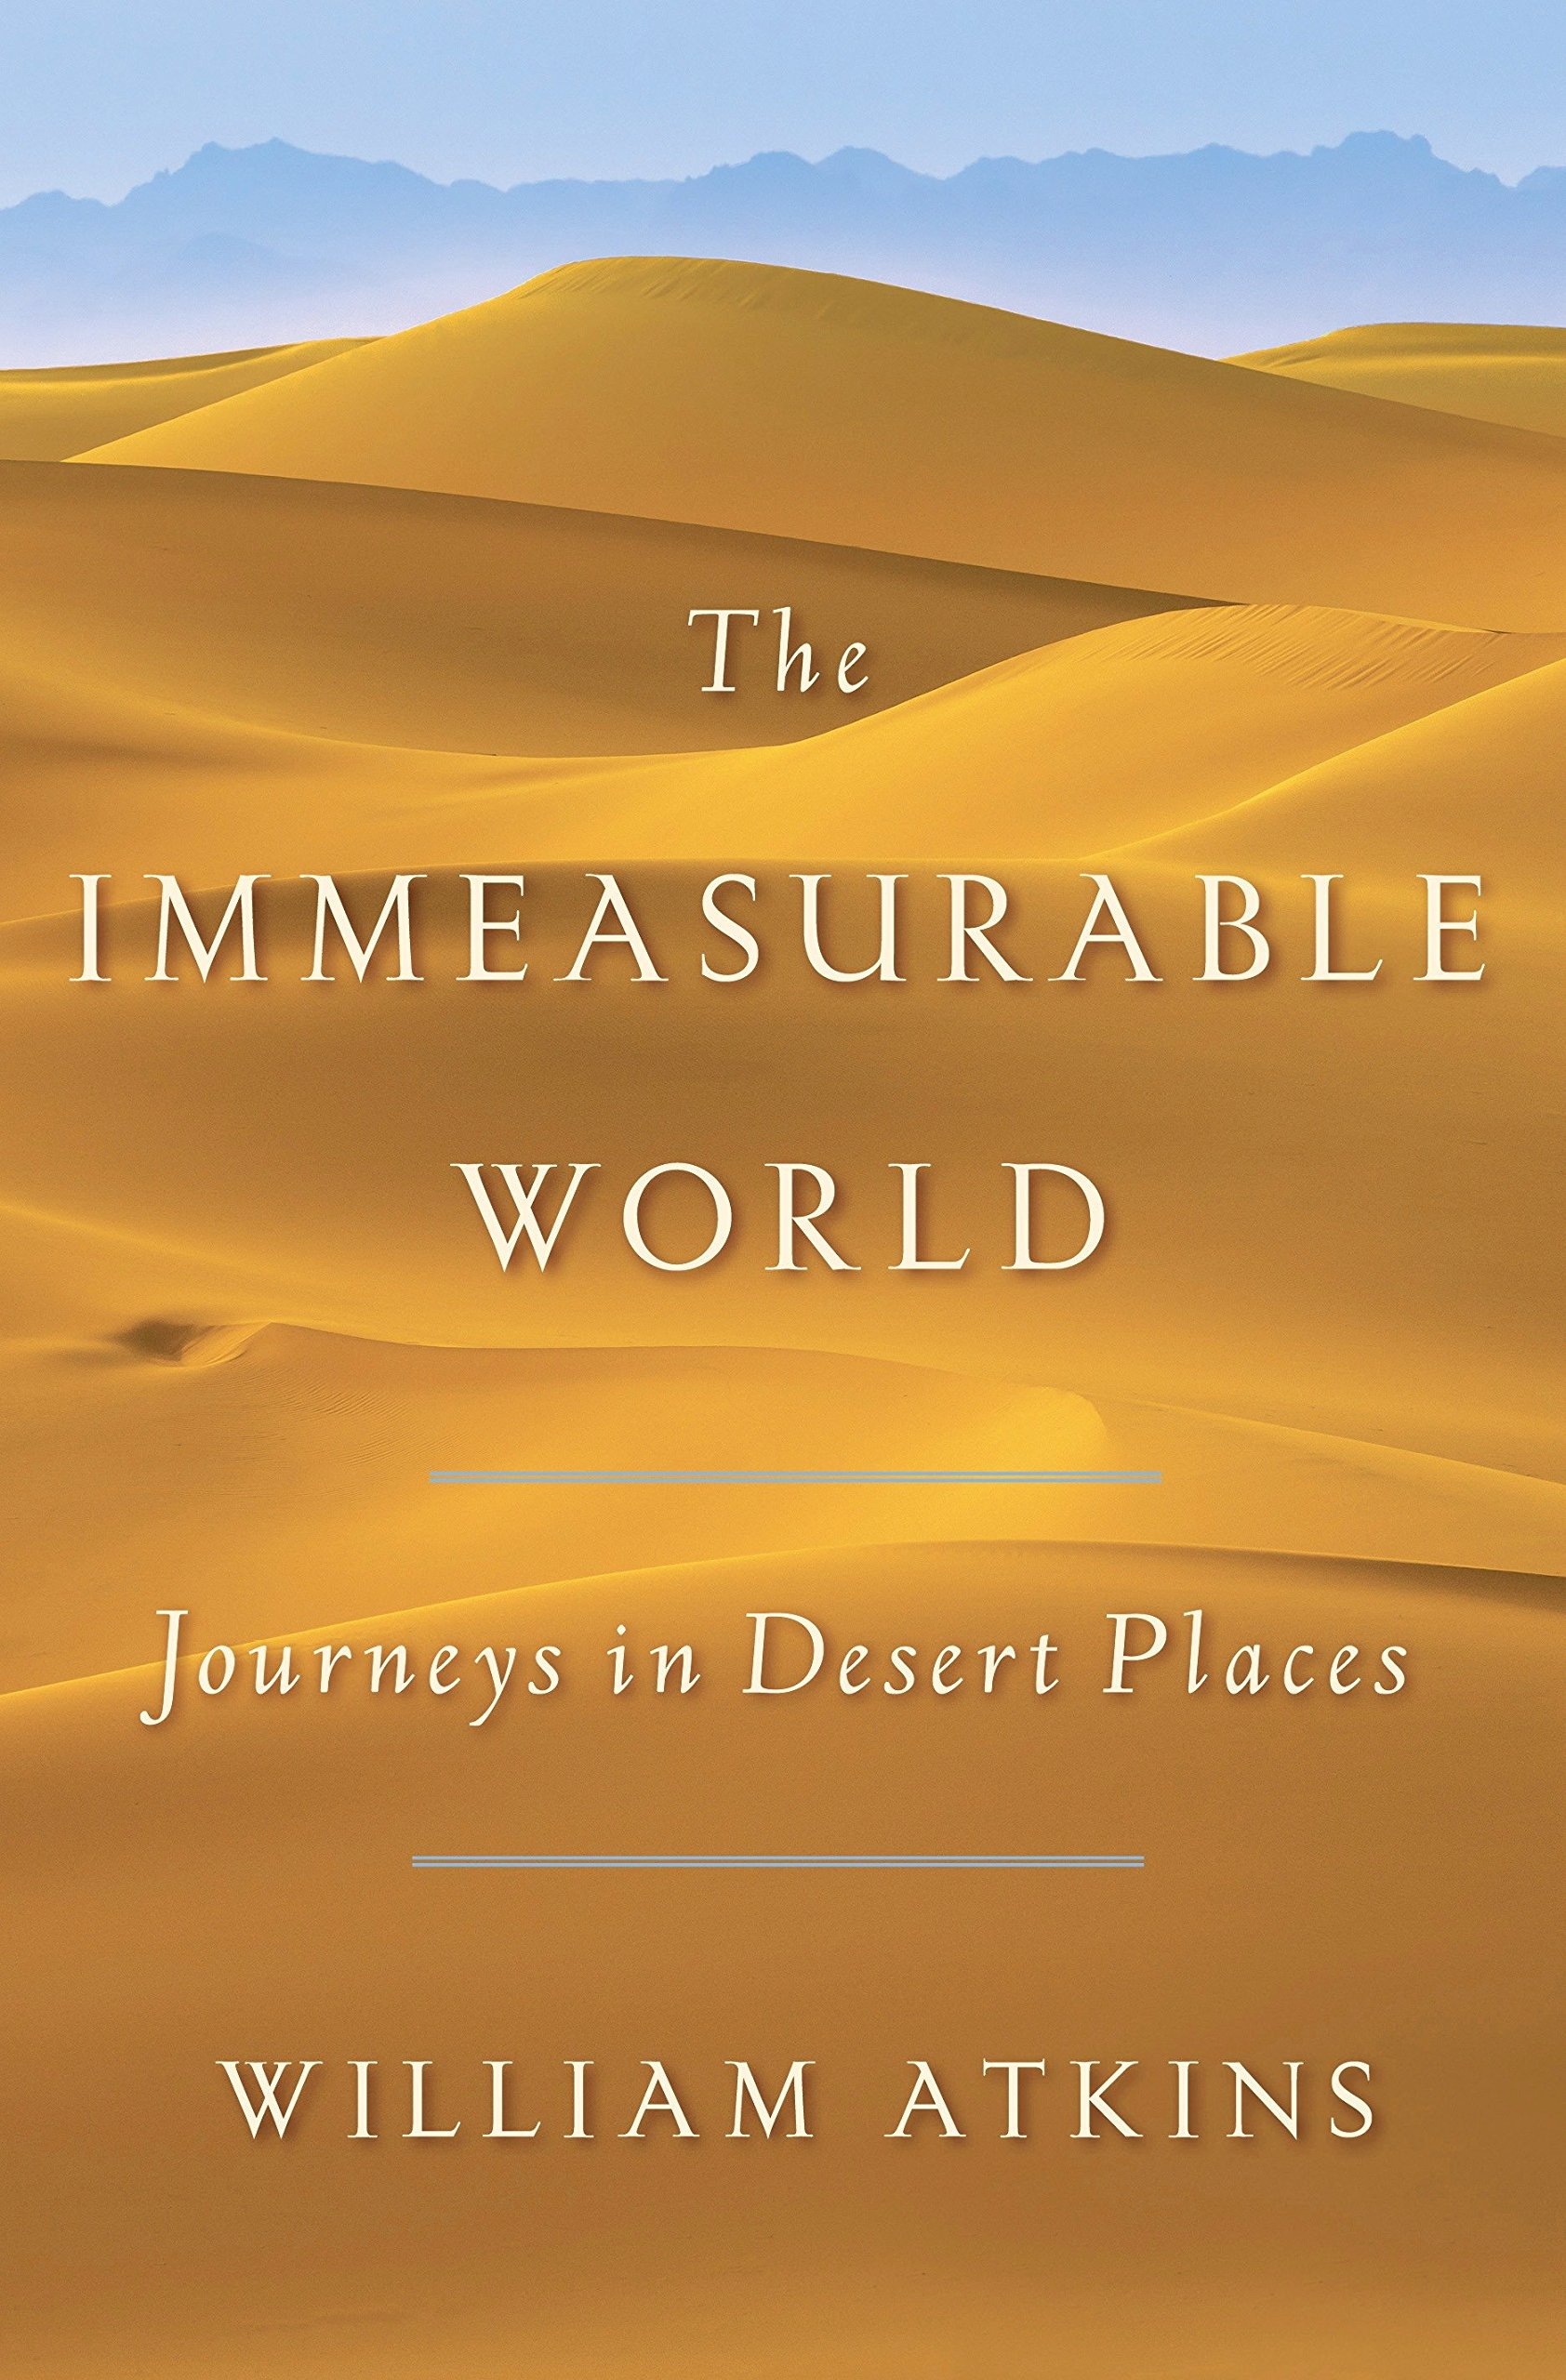 f1c53aad08cb1 Amazon.com: The Immeasurable World: Journeys in Desert Places ...